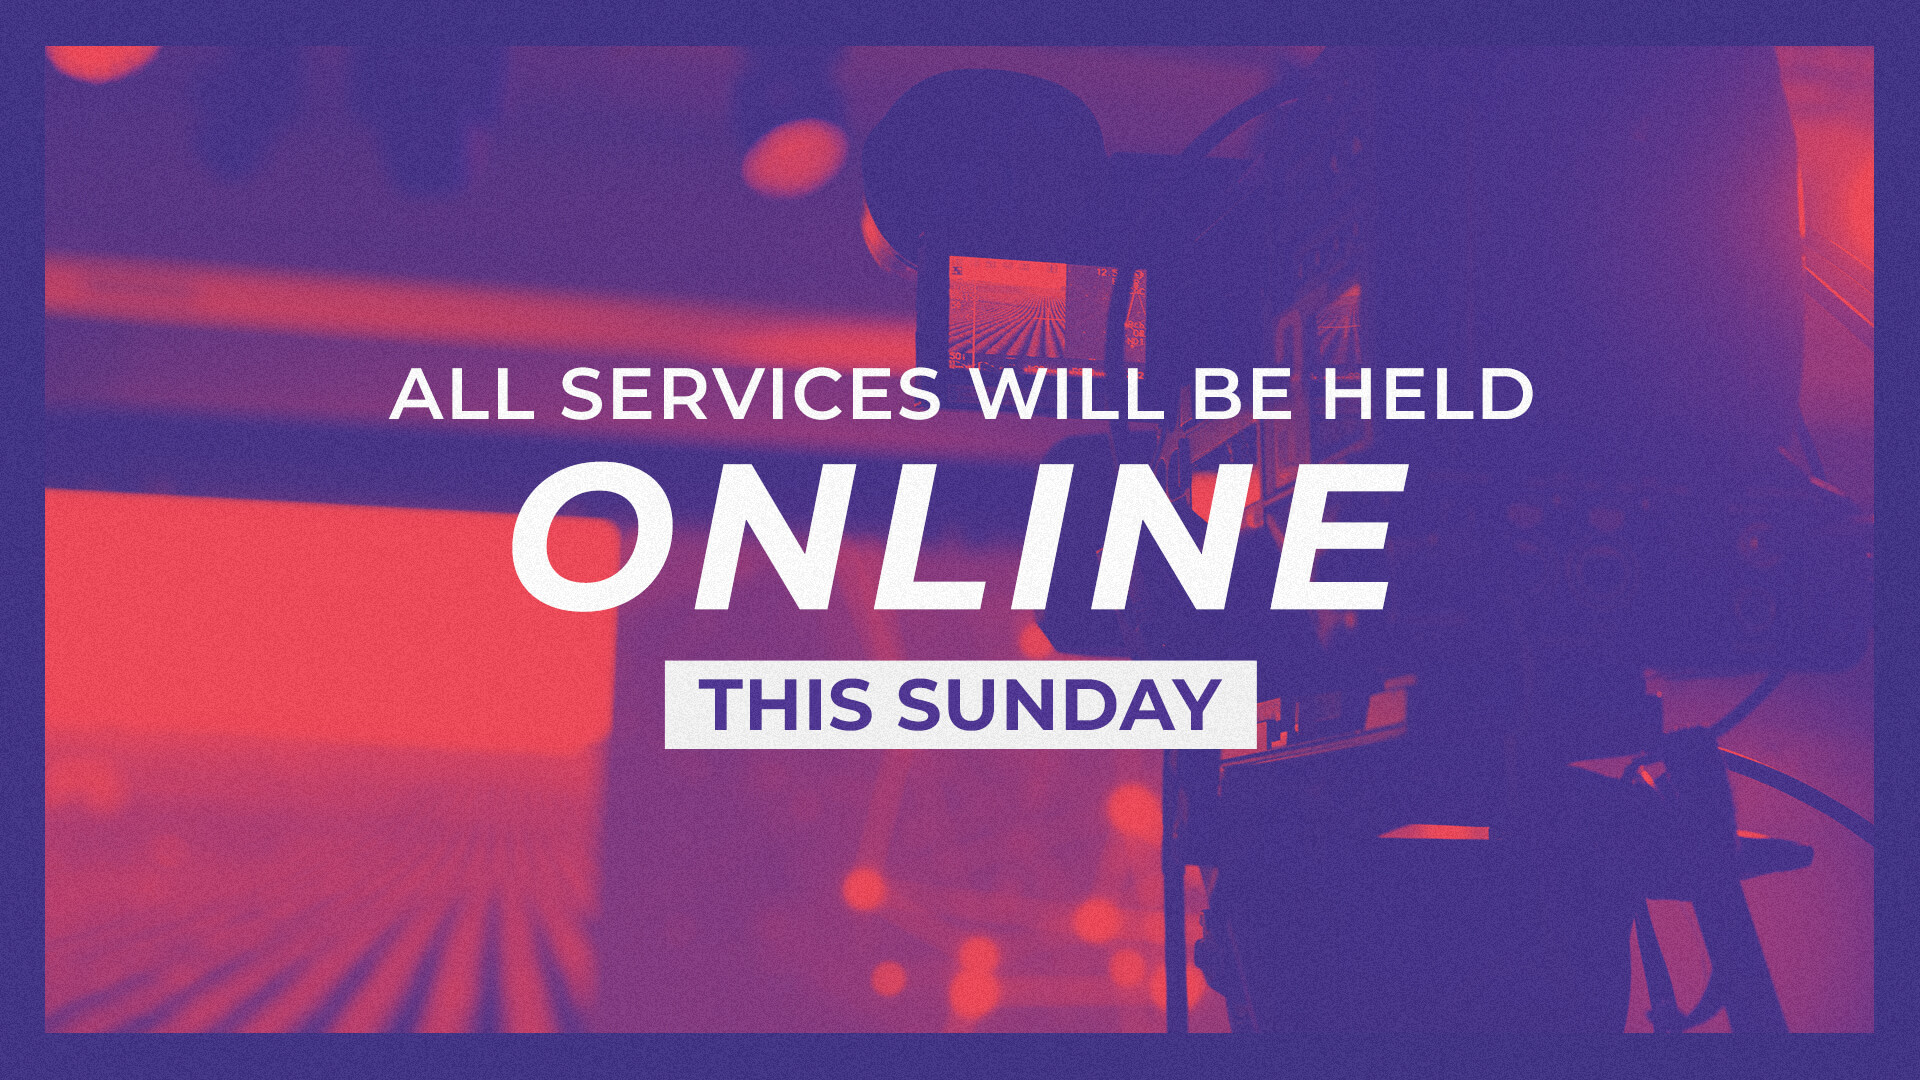 All-Services-Will-Be-Held-Online-This-Sunday-Gradient-Camera-Subtitle